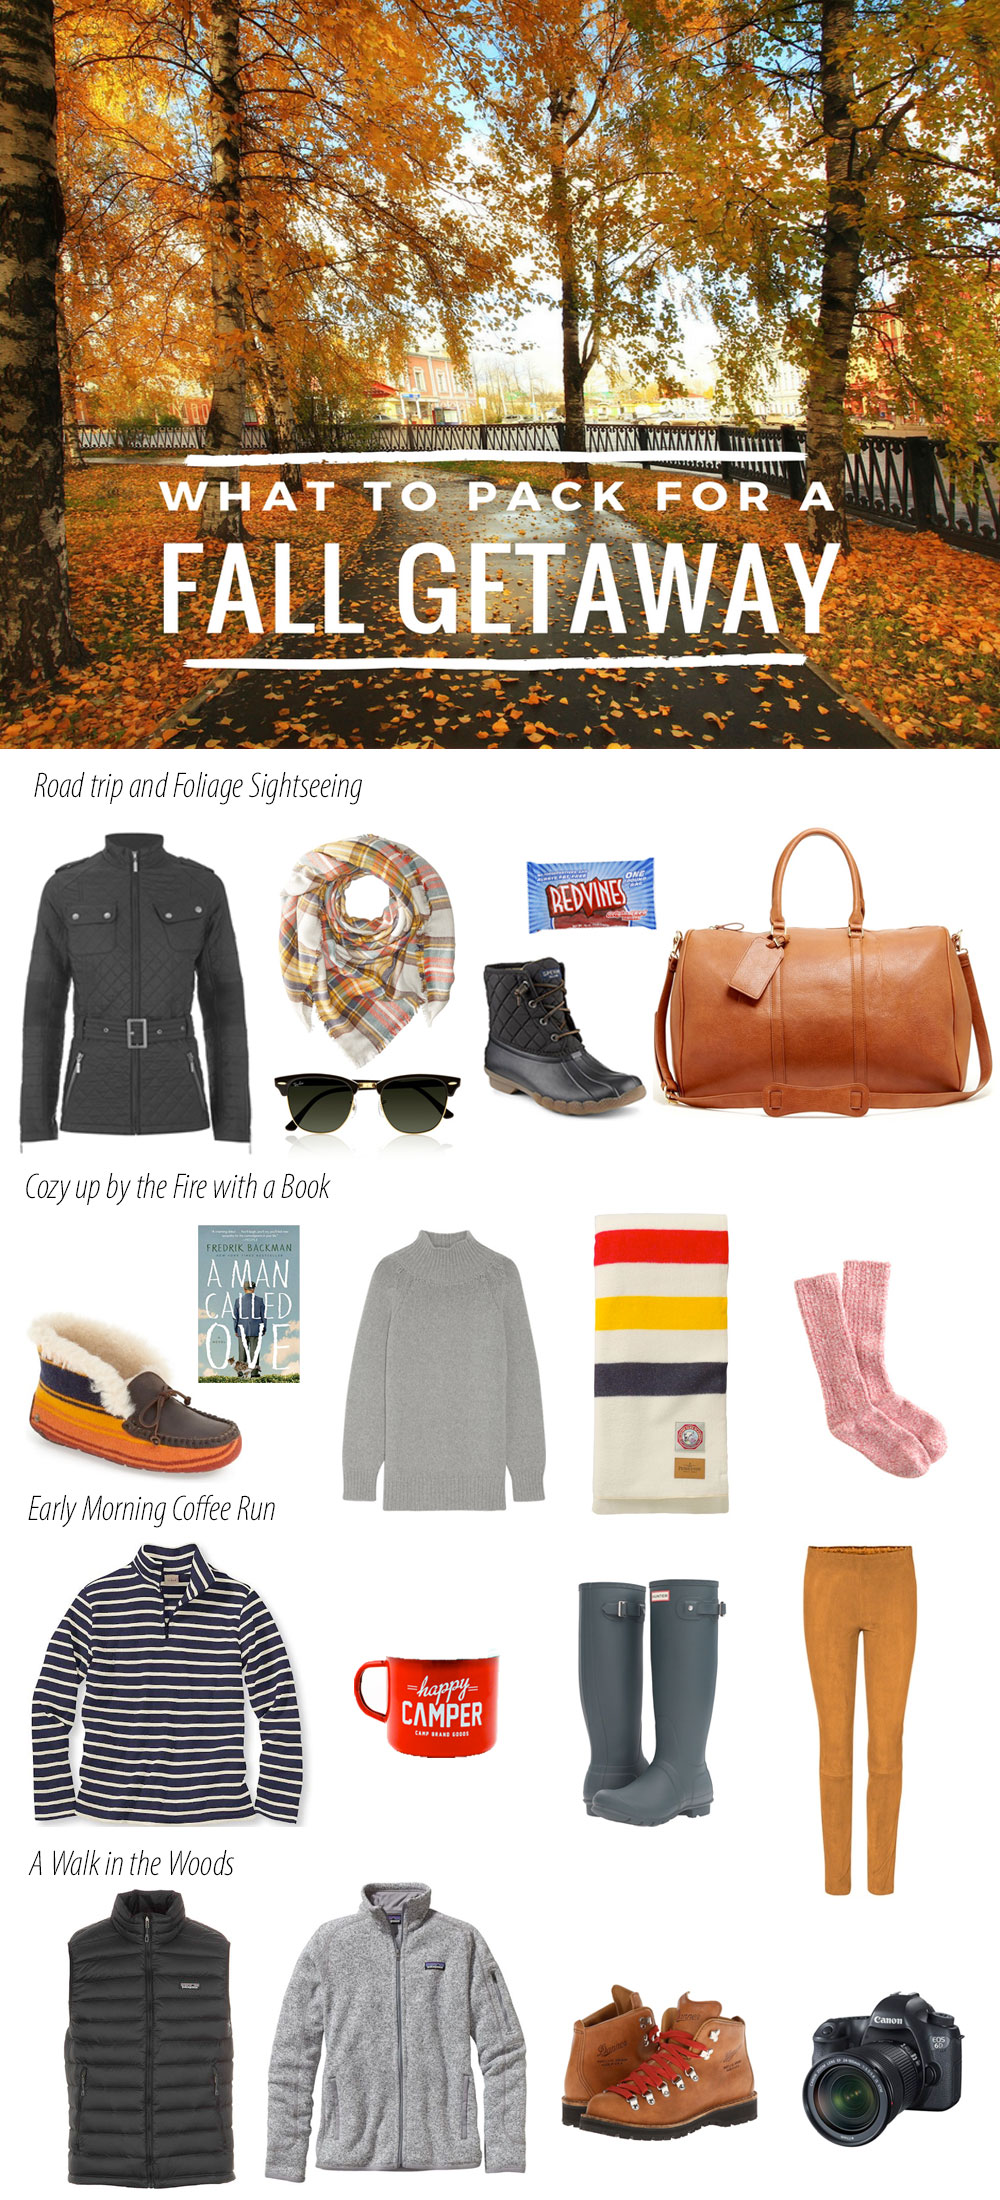 What to Pack for a Fall Getaway